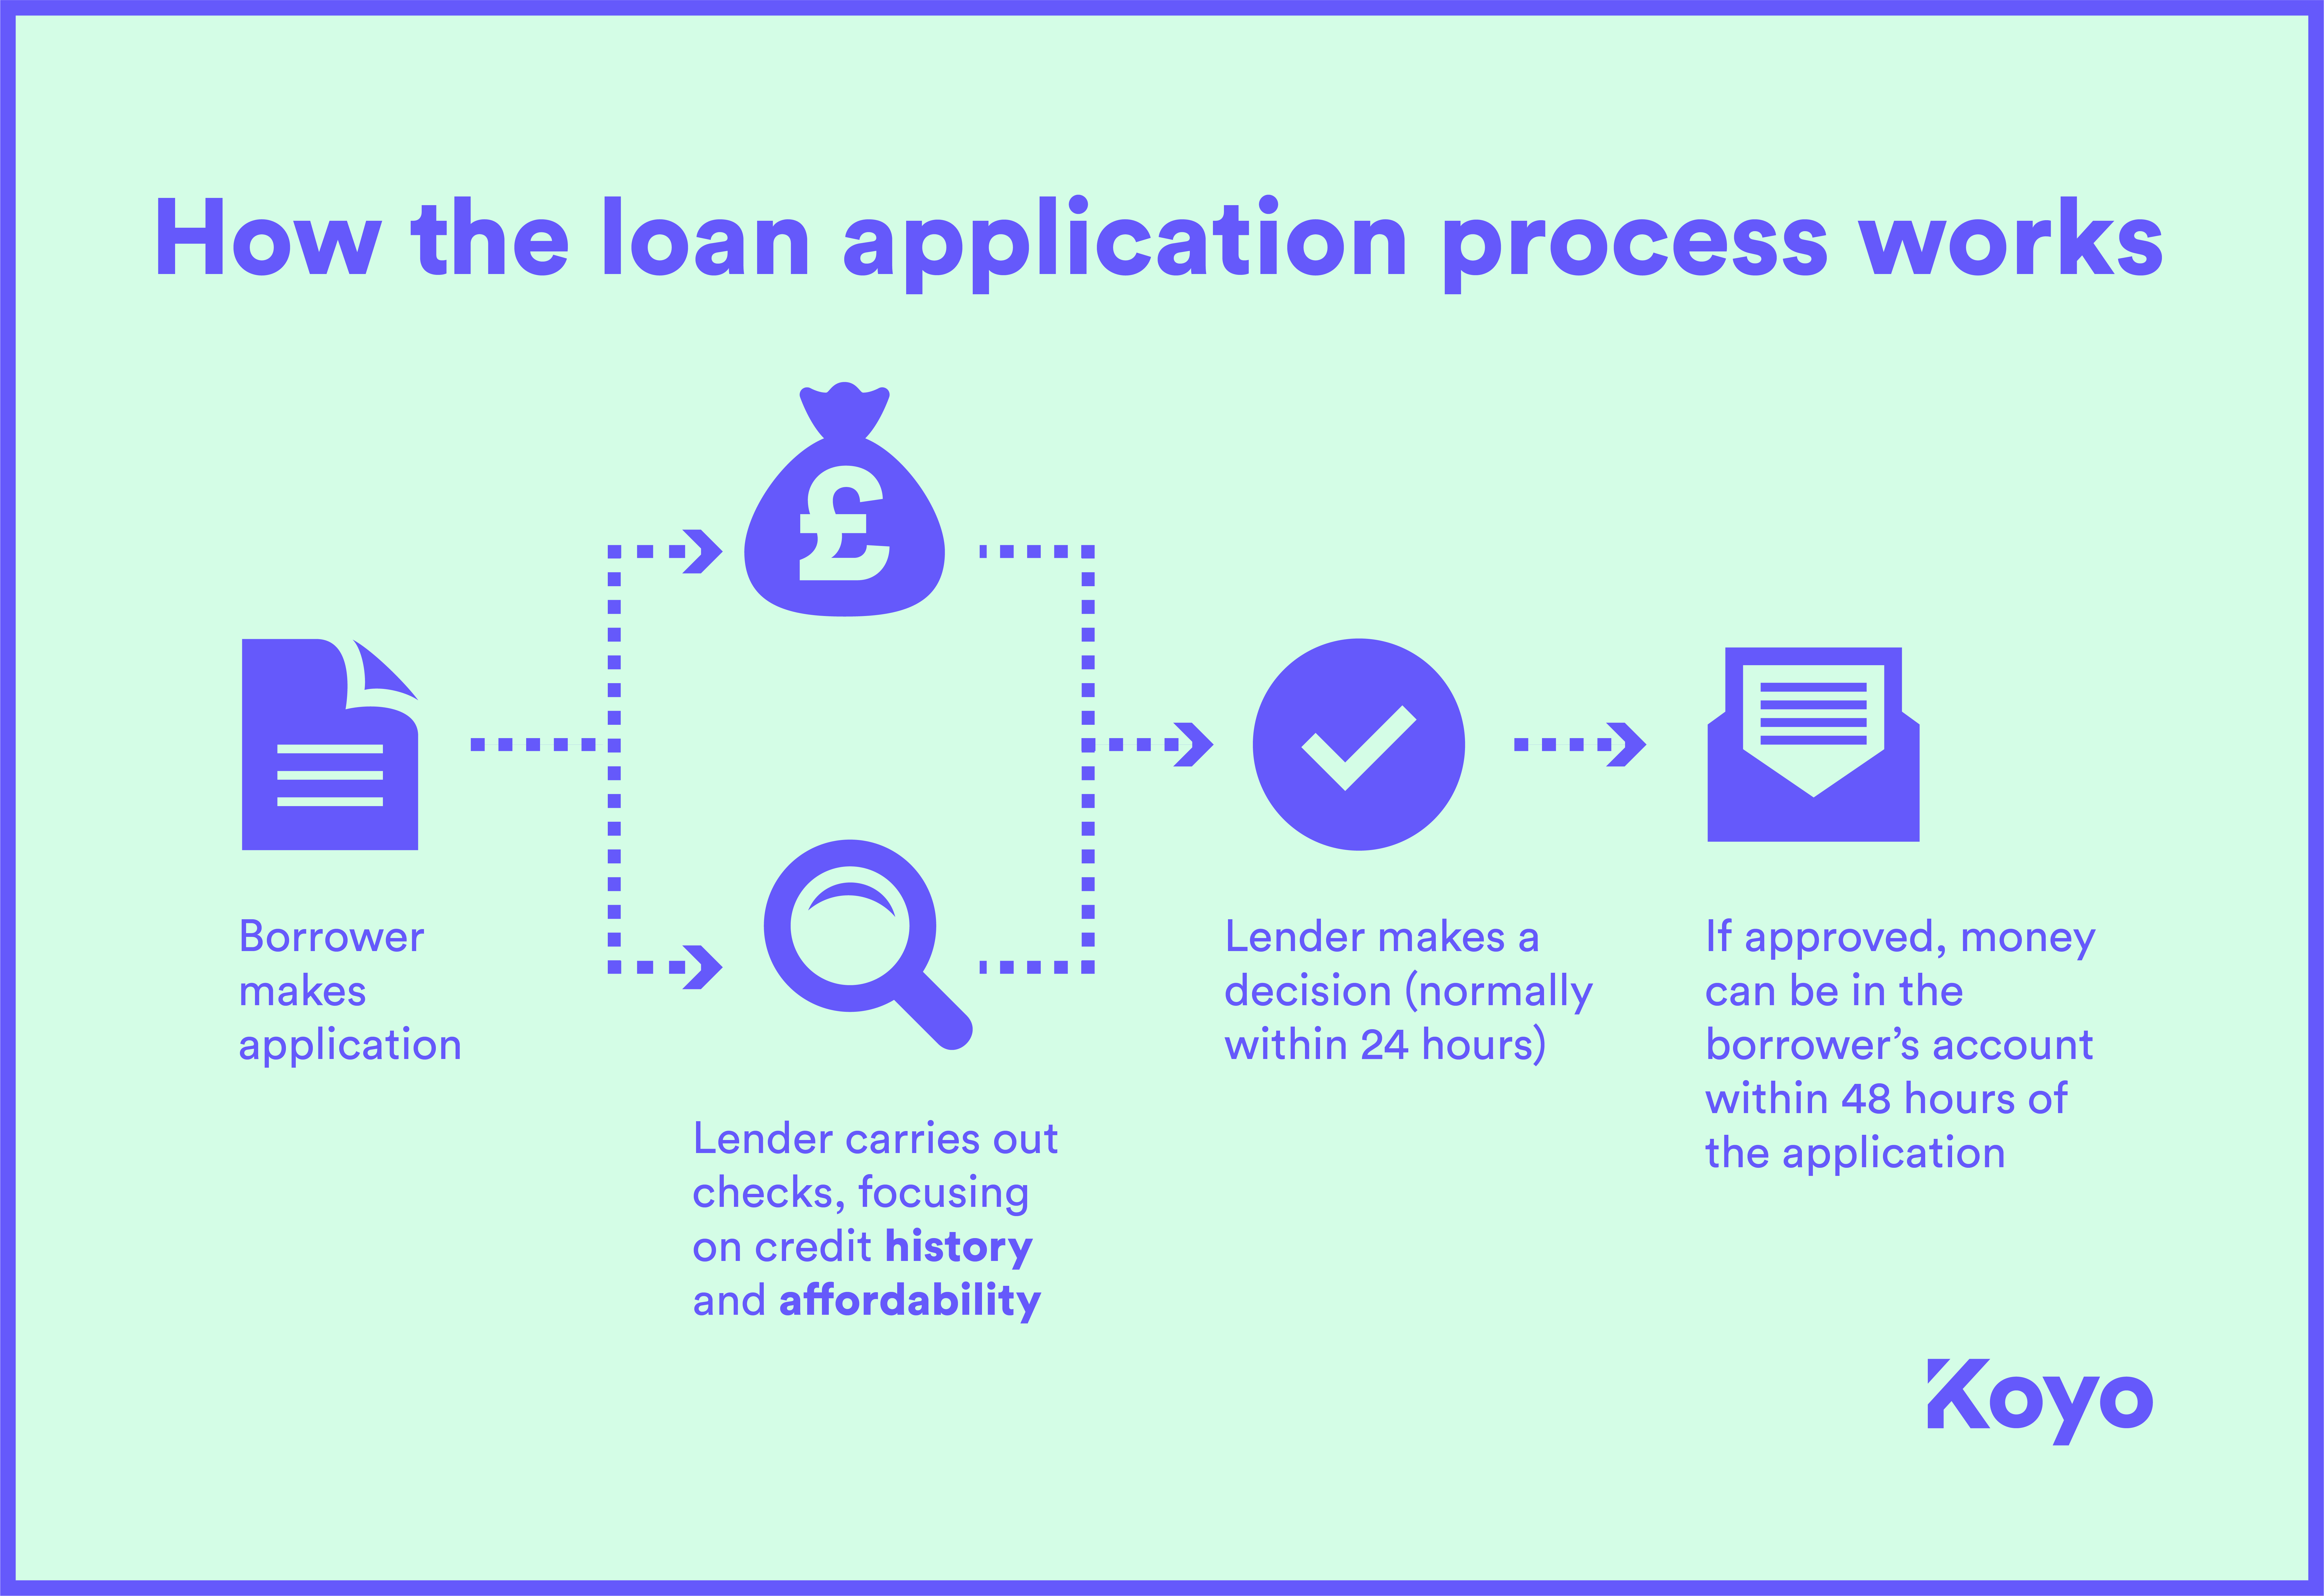 How the loan application process works